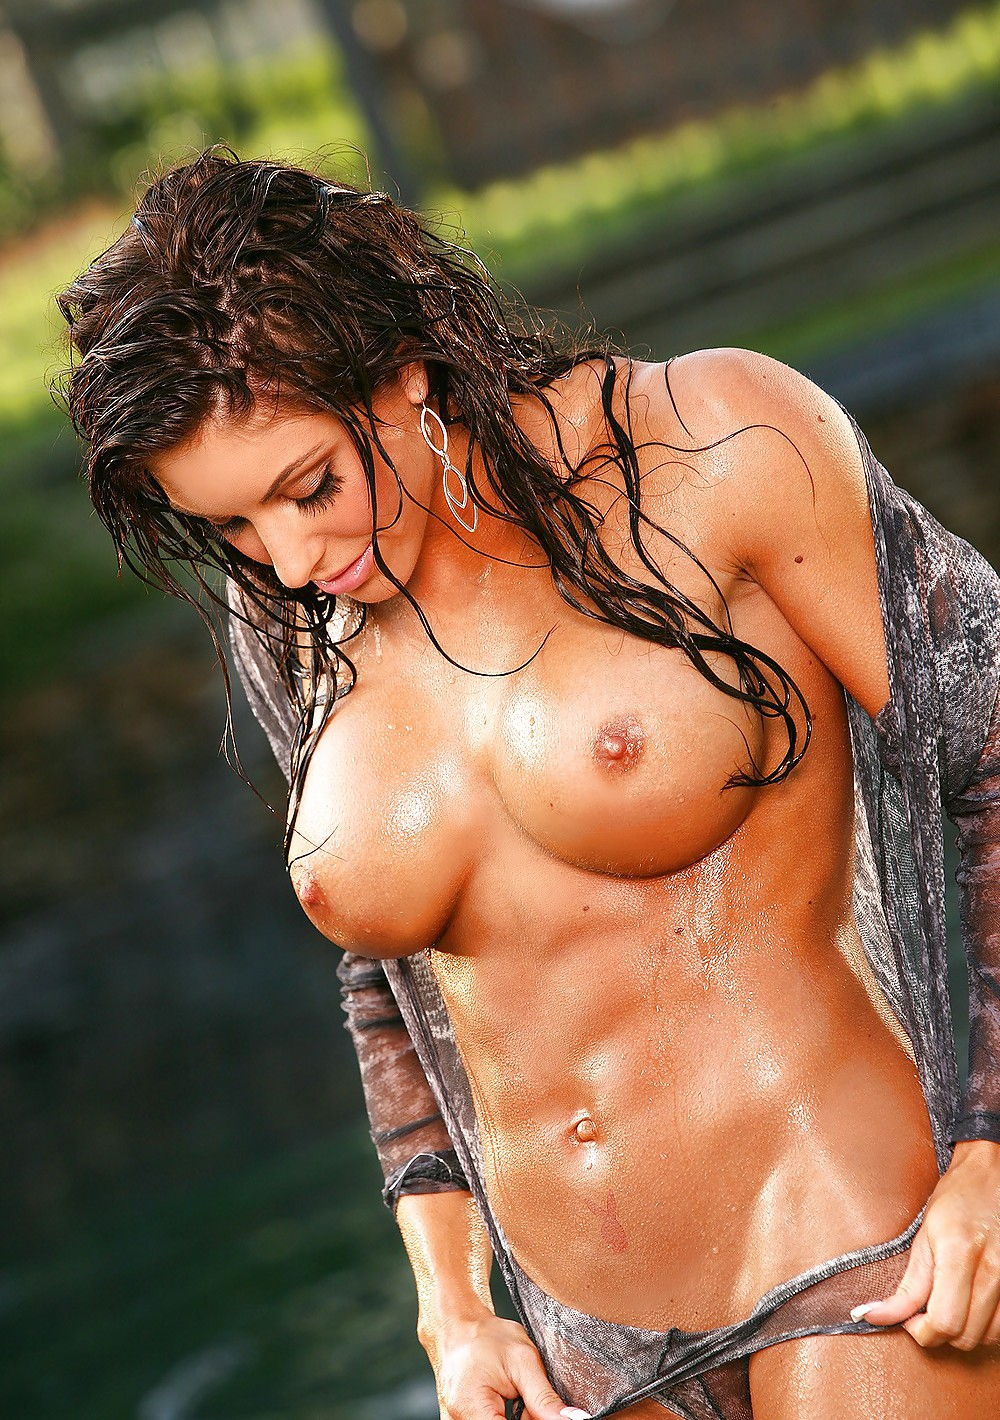 xxx-girls-with-abs